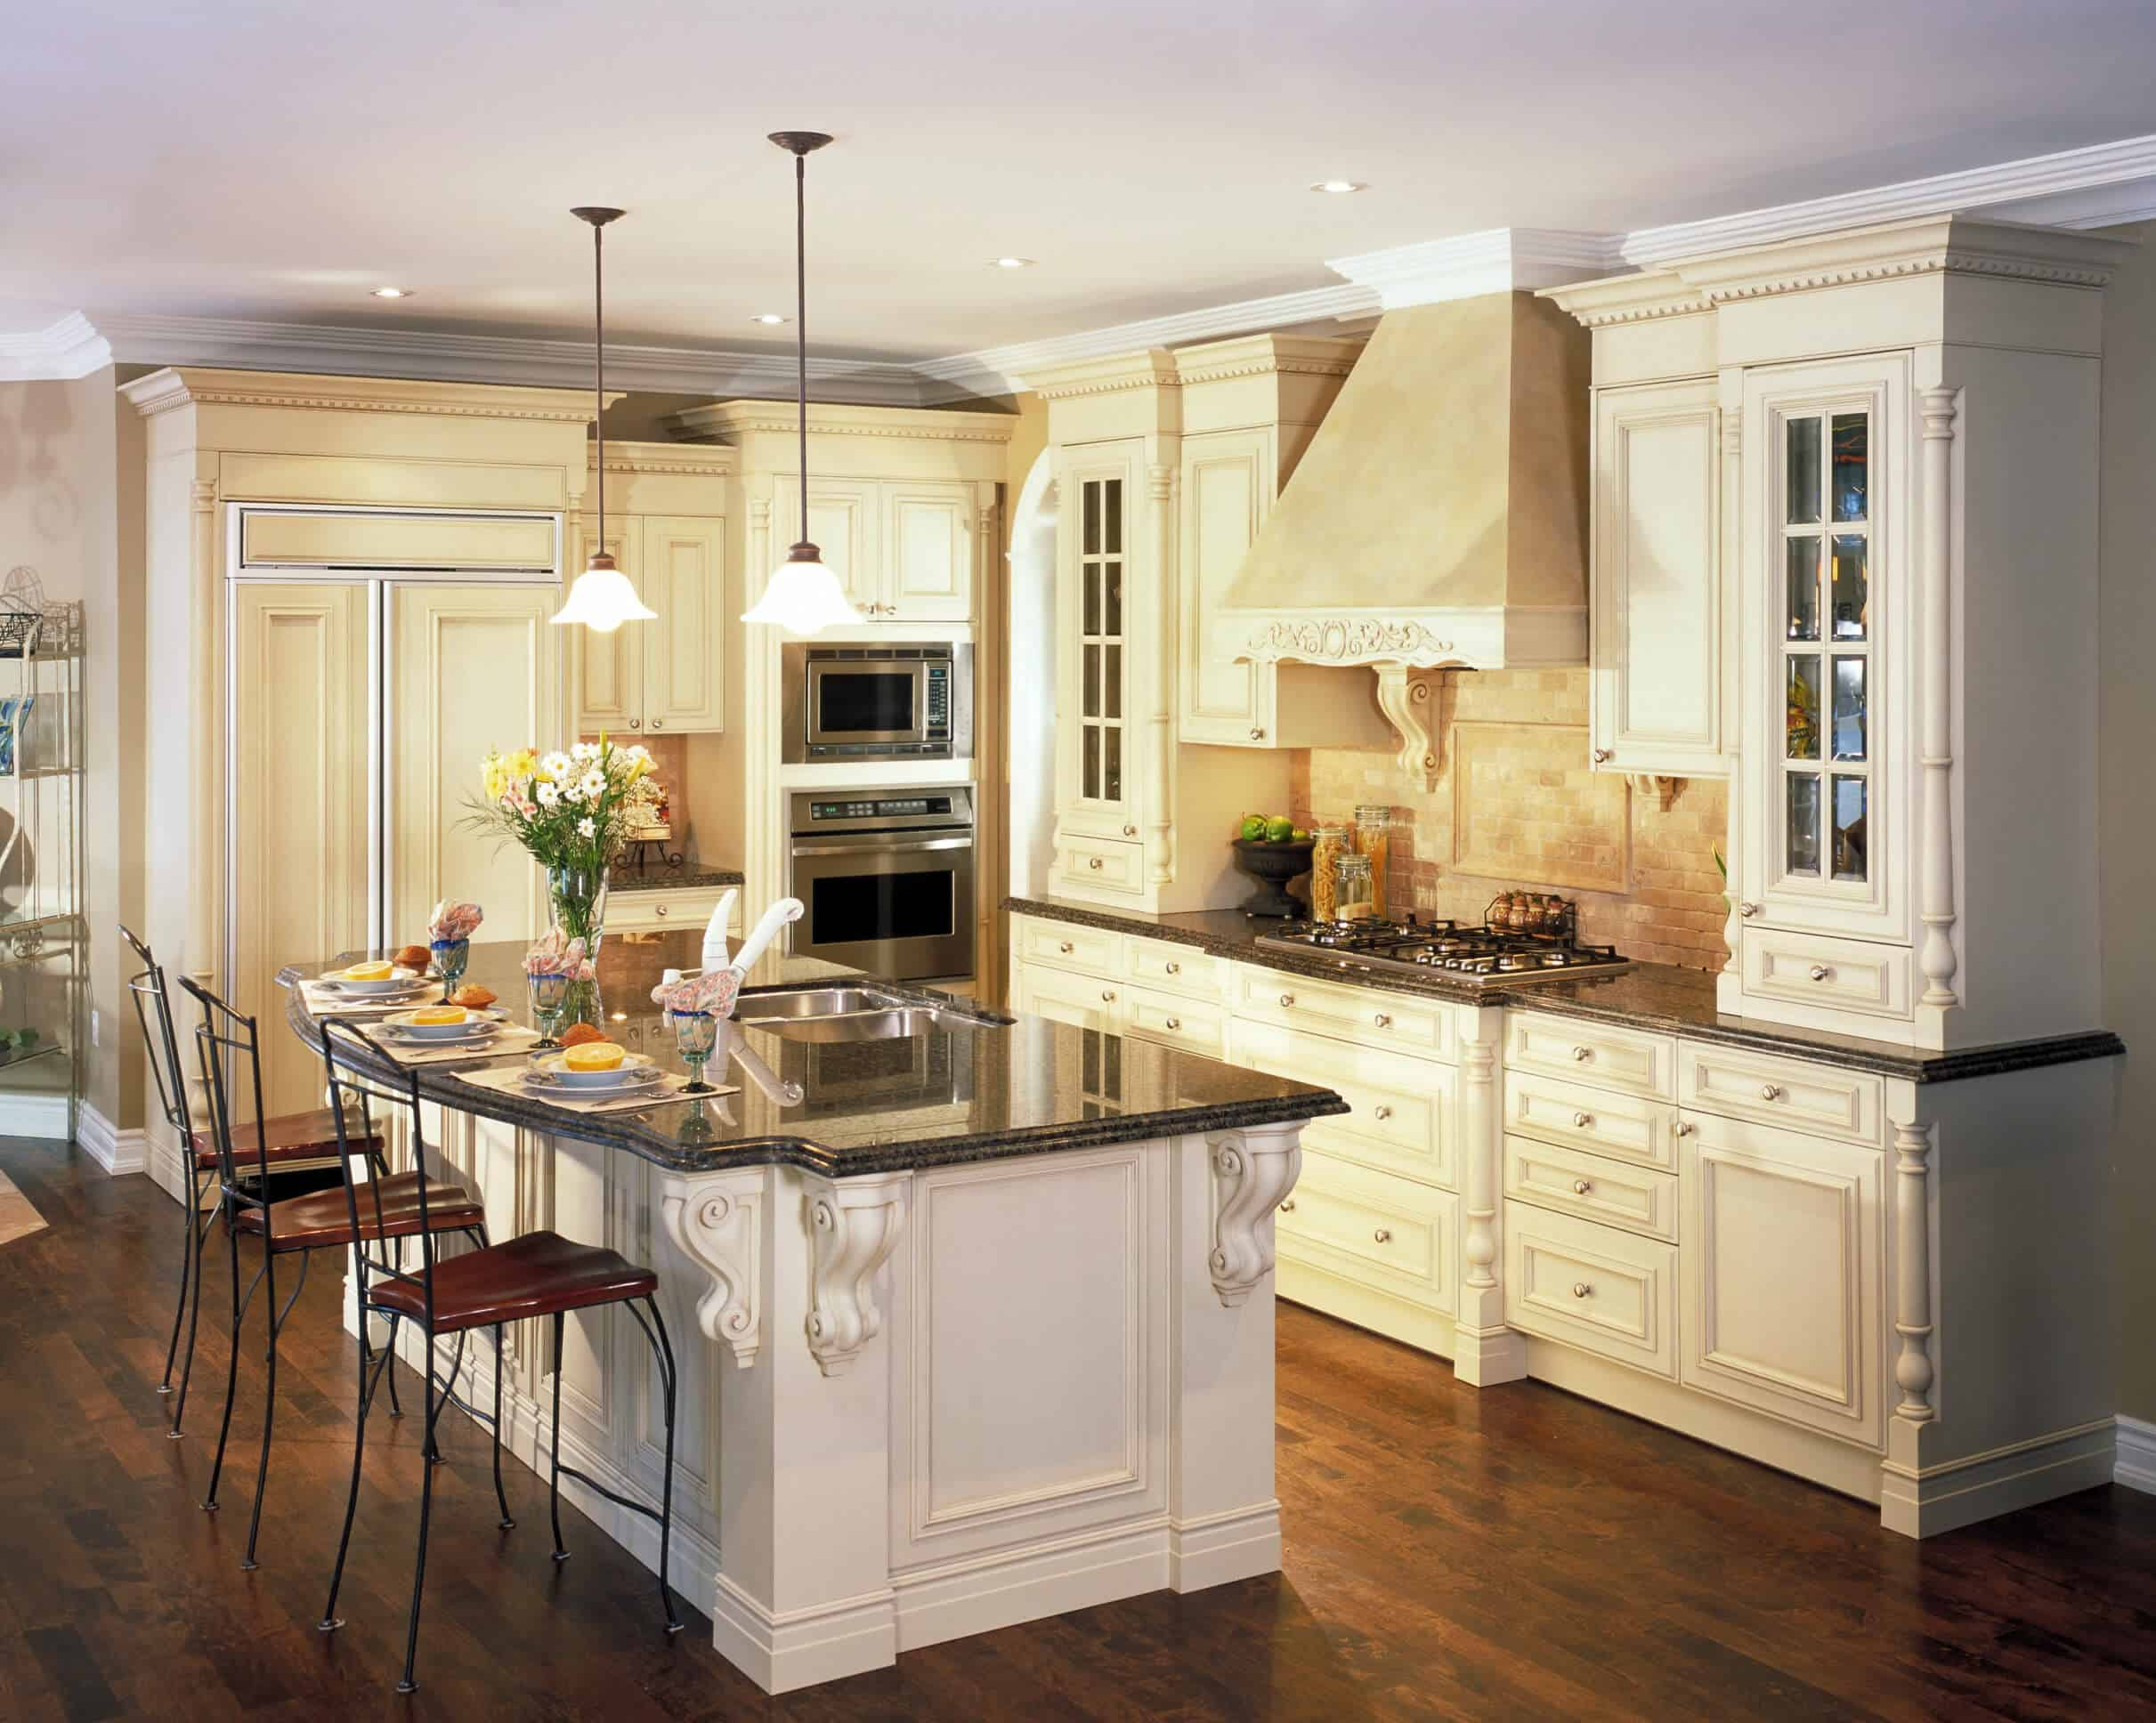 Ideal for lovers of traditional styles, this impressive kitchen is all about the Victorian era. Extra carvings in the island stand as well as the mini pillars incorporated in the cabinet frames lets you experience the stately and dignified splendor of the past times.